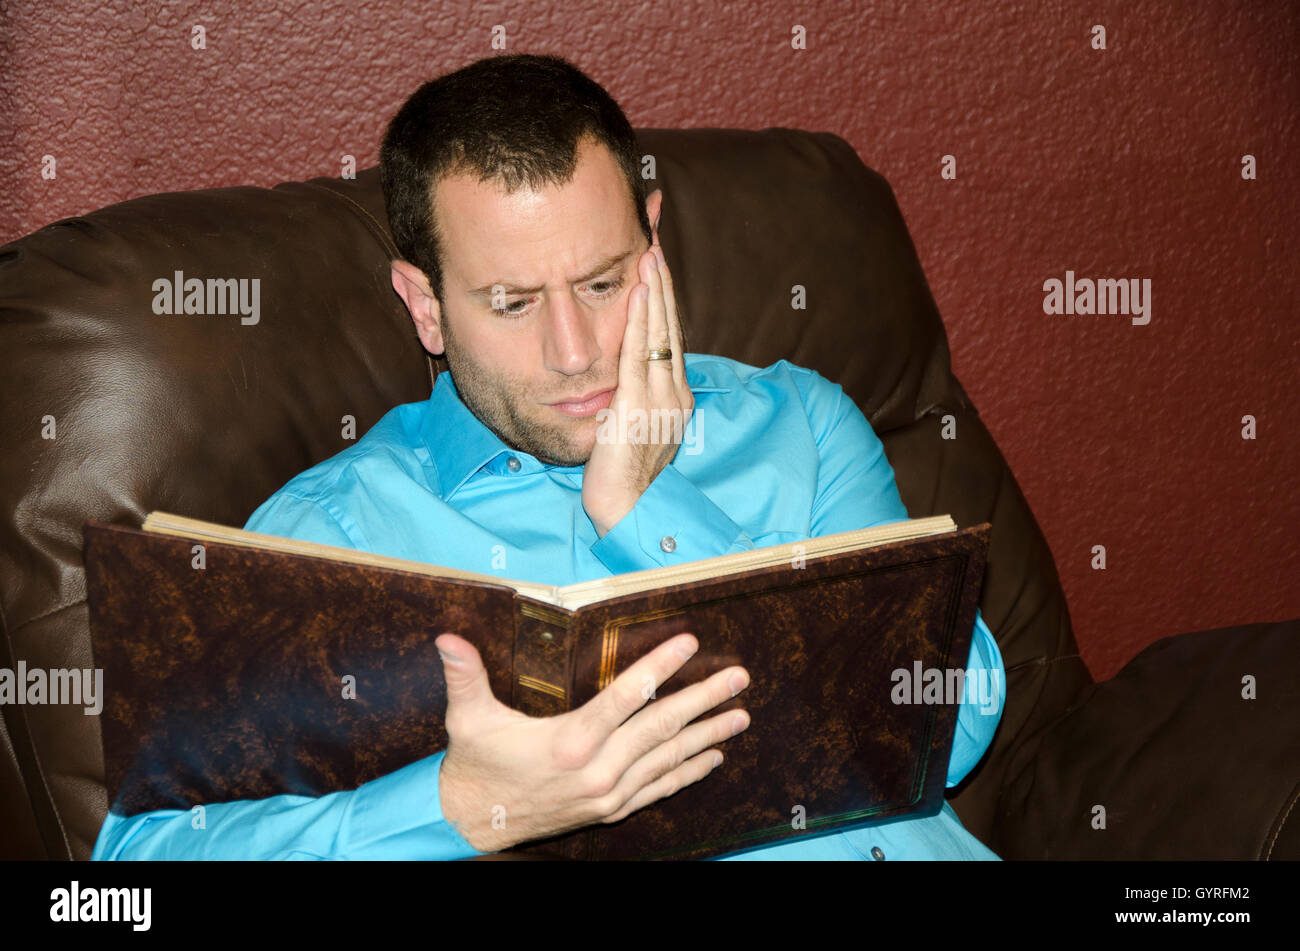 Man reminiscing looking at an old photo album. - Stock Image